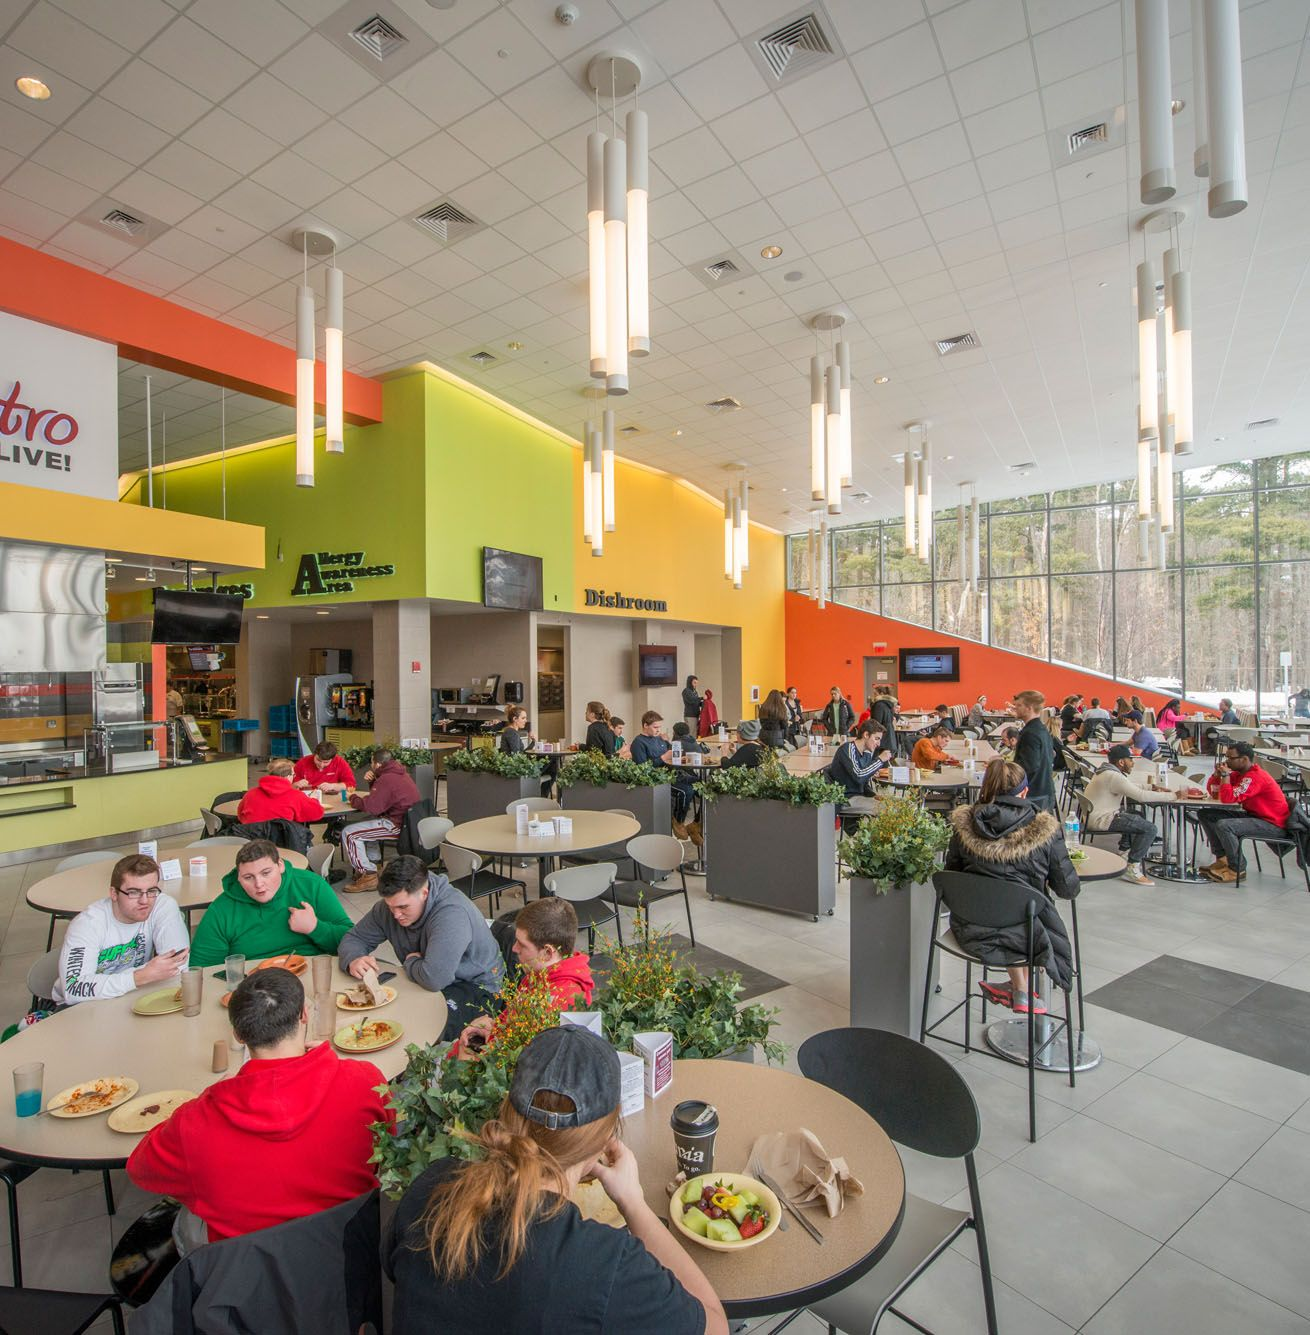 Students eating in dining facilities